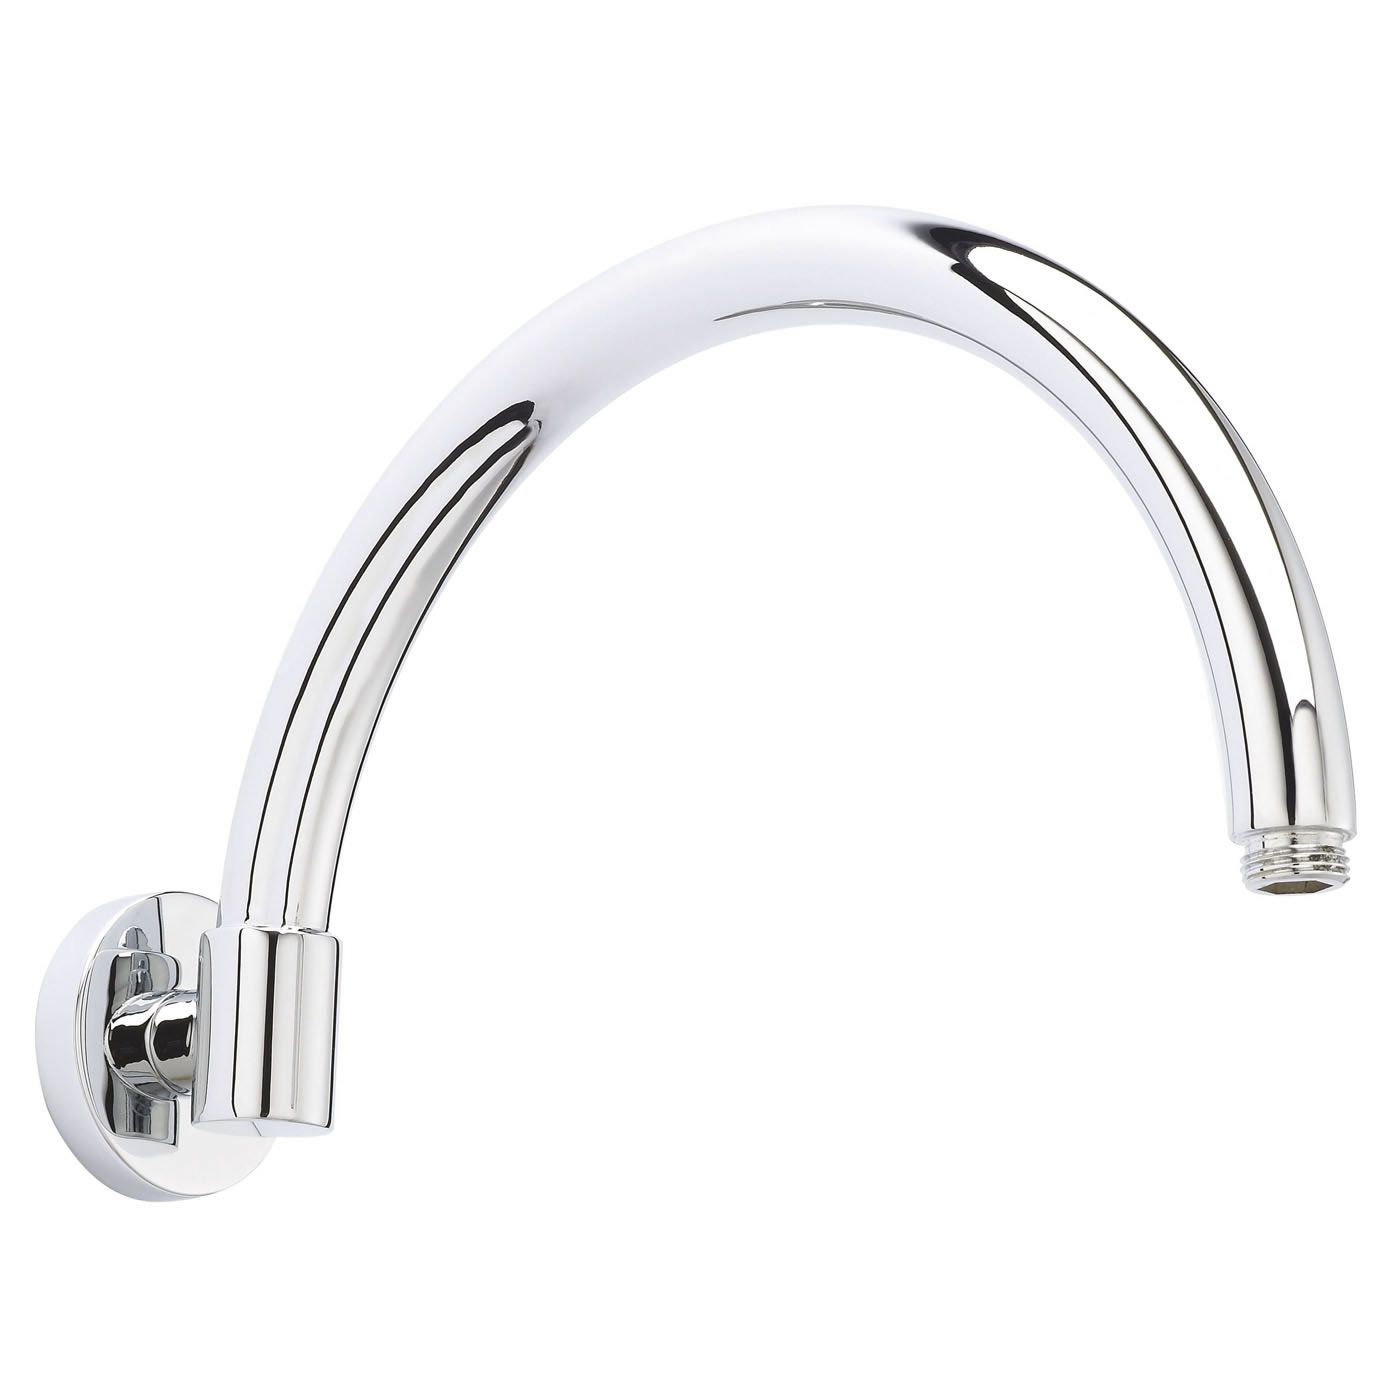 Valquest Curved Wall Mount Arm - 12.5""